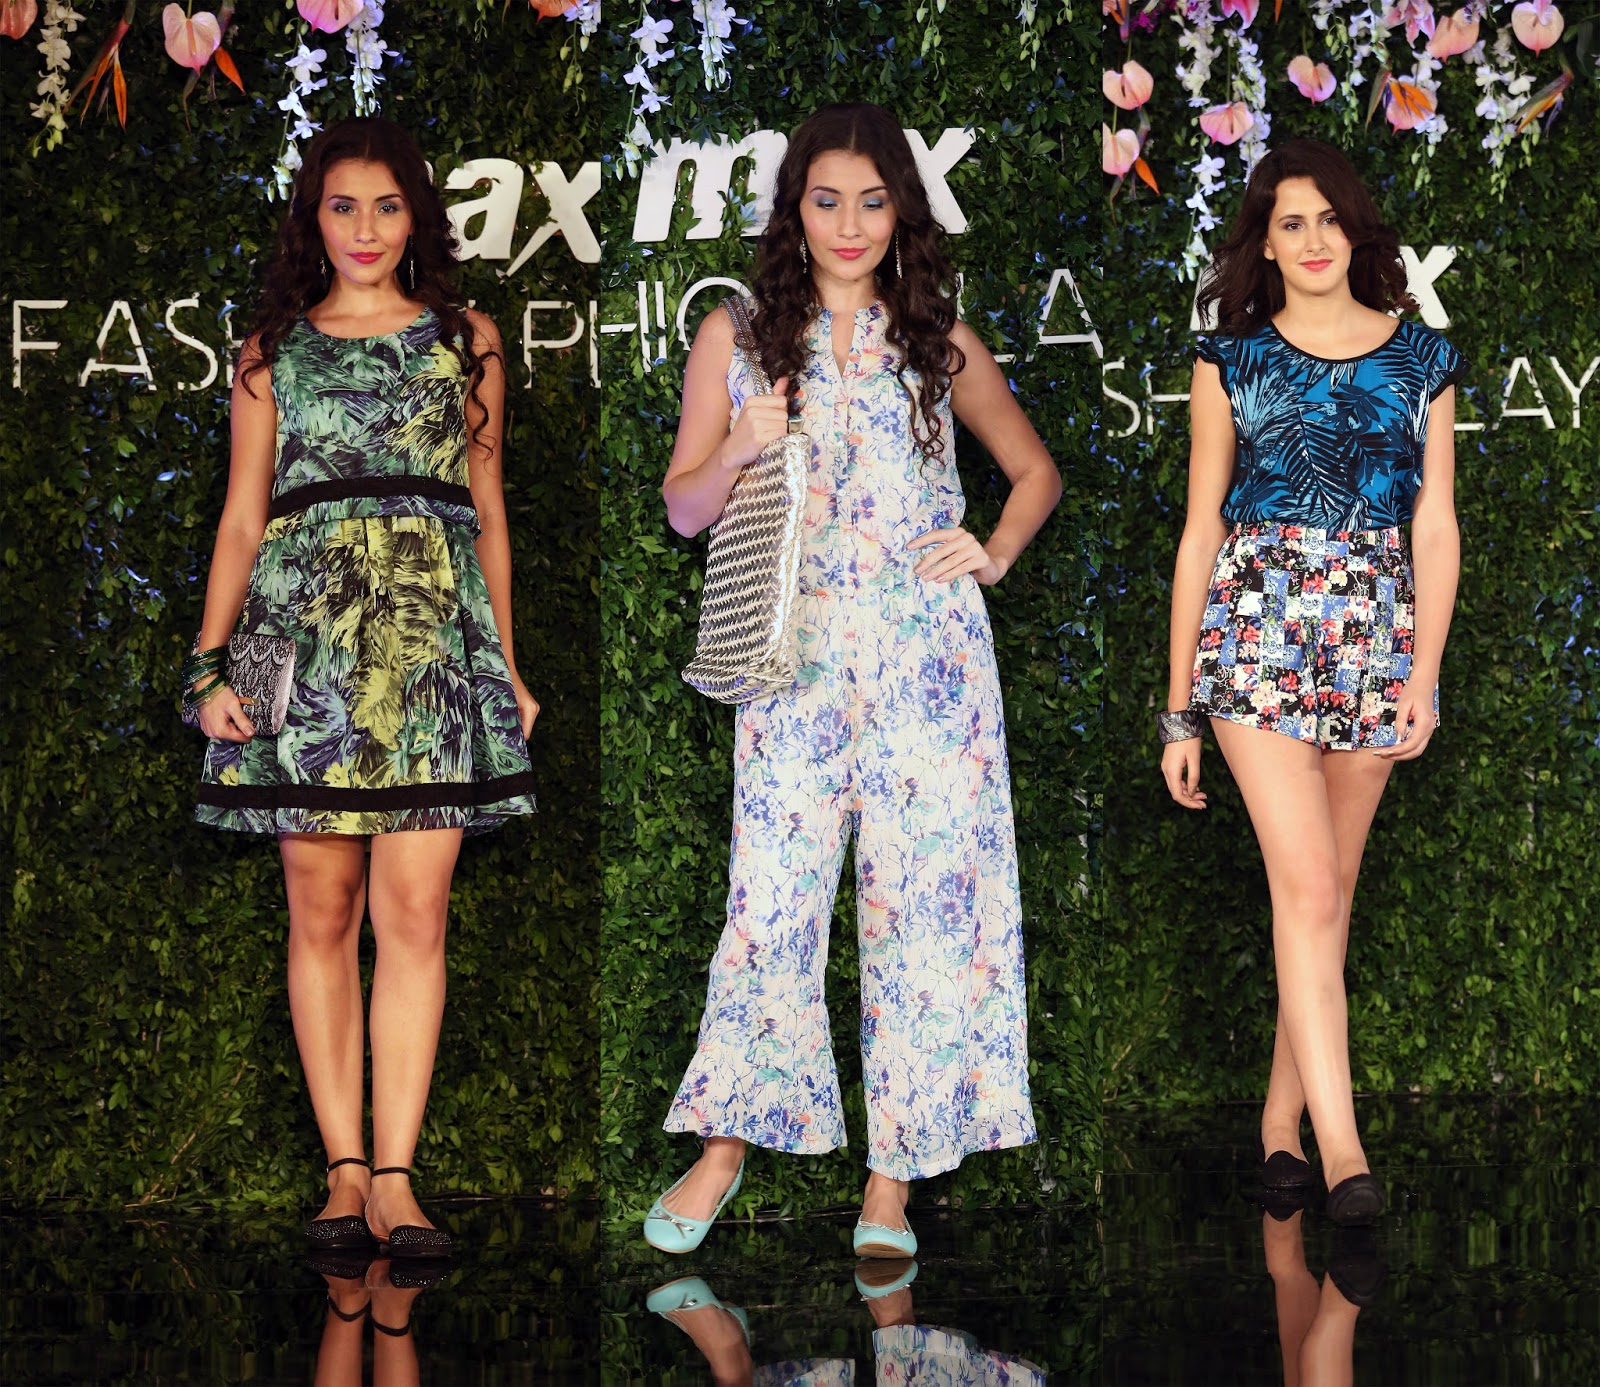 max fashion play, max spring summer 15, max fashion, womenswear, tropical